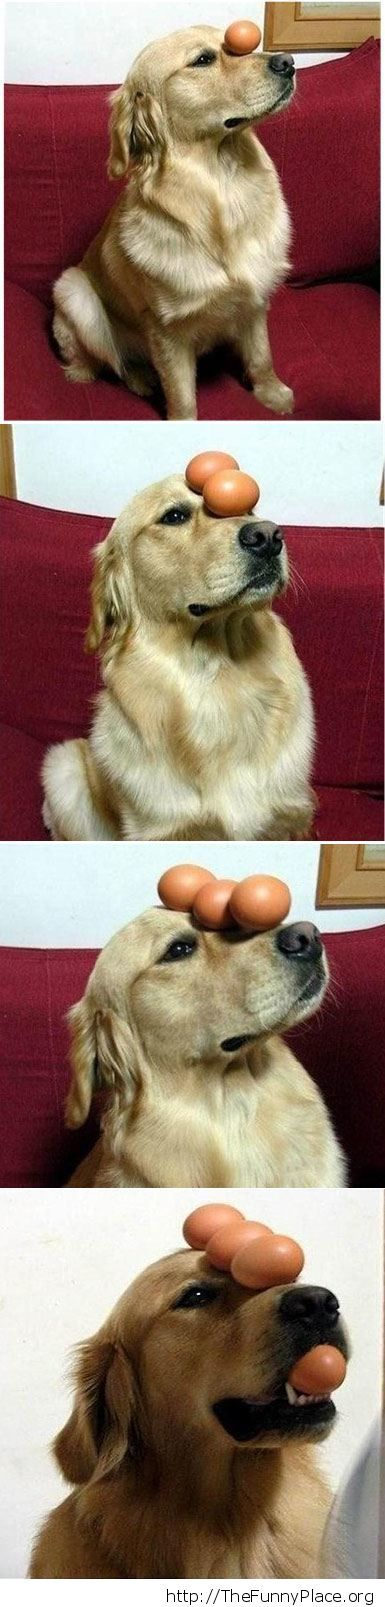 Dog playing with eggs